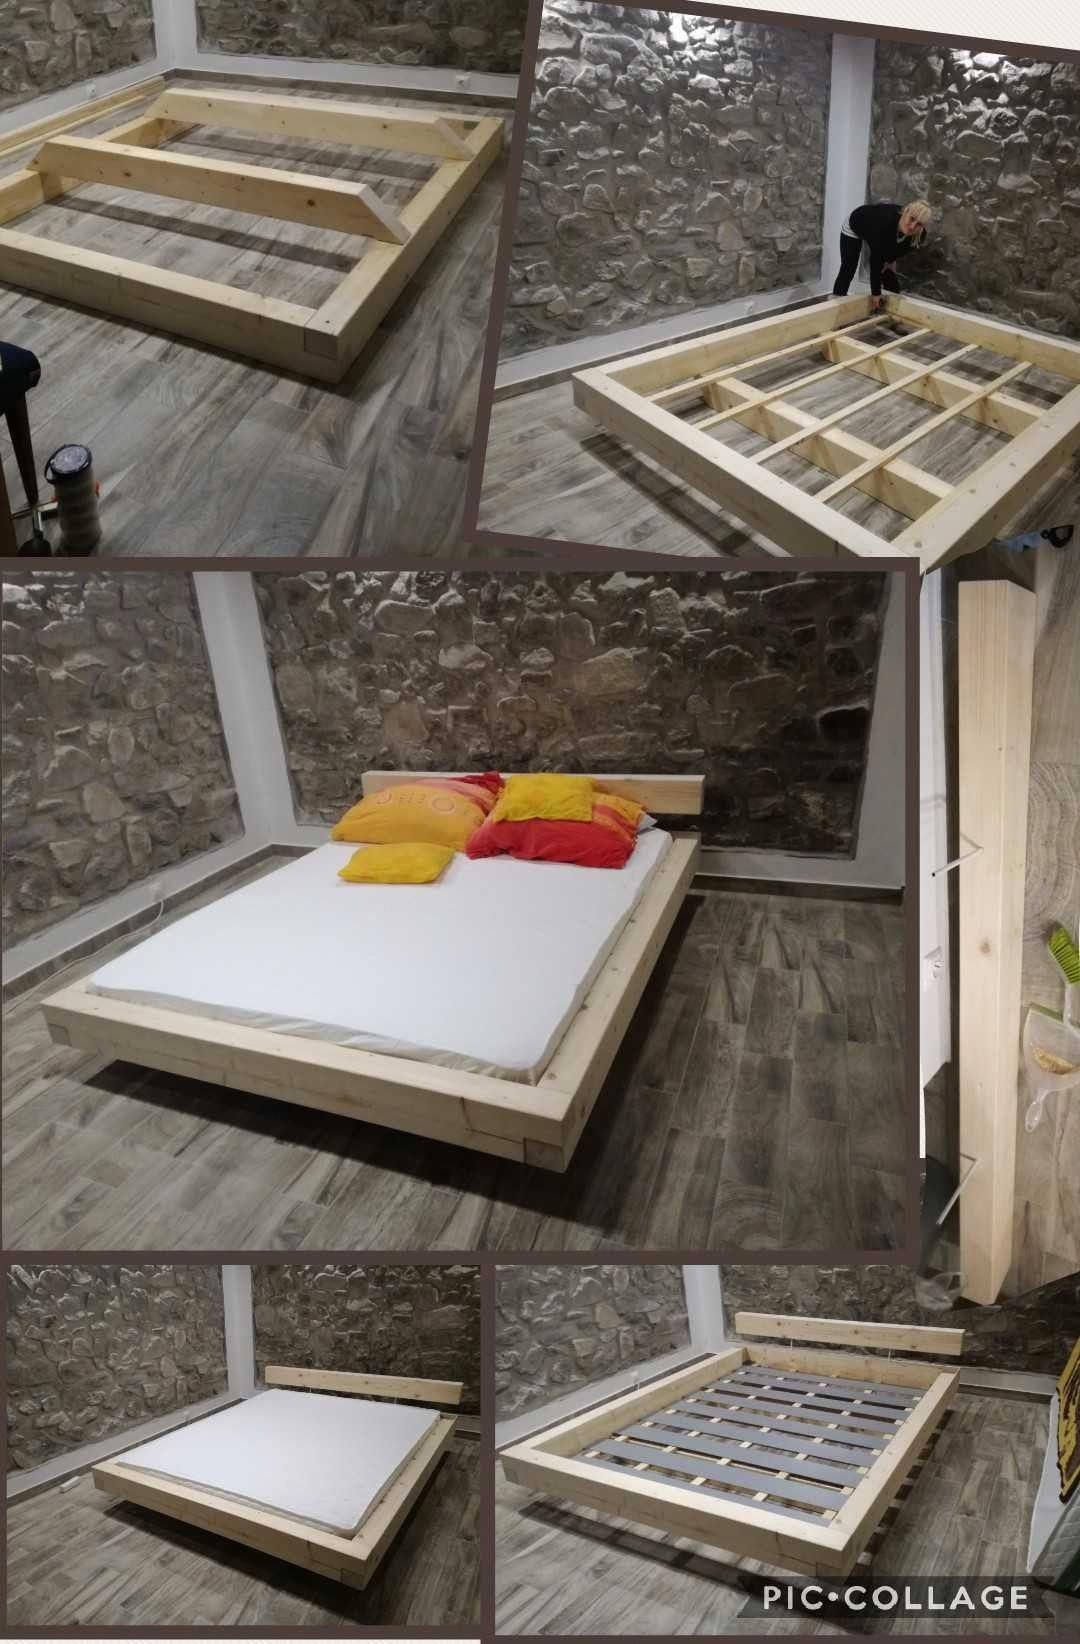 26 Incredible Bed Frames No Box Spring Wooden Bed Frame No Box